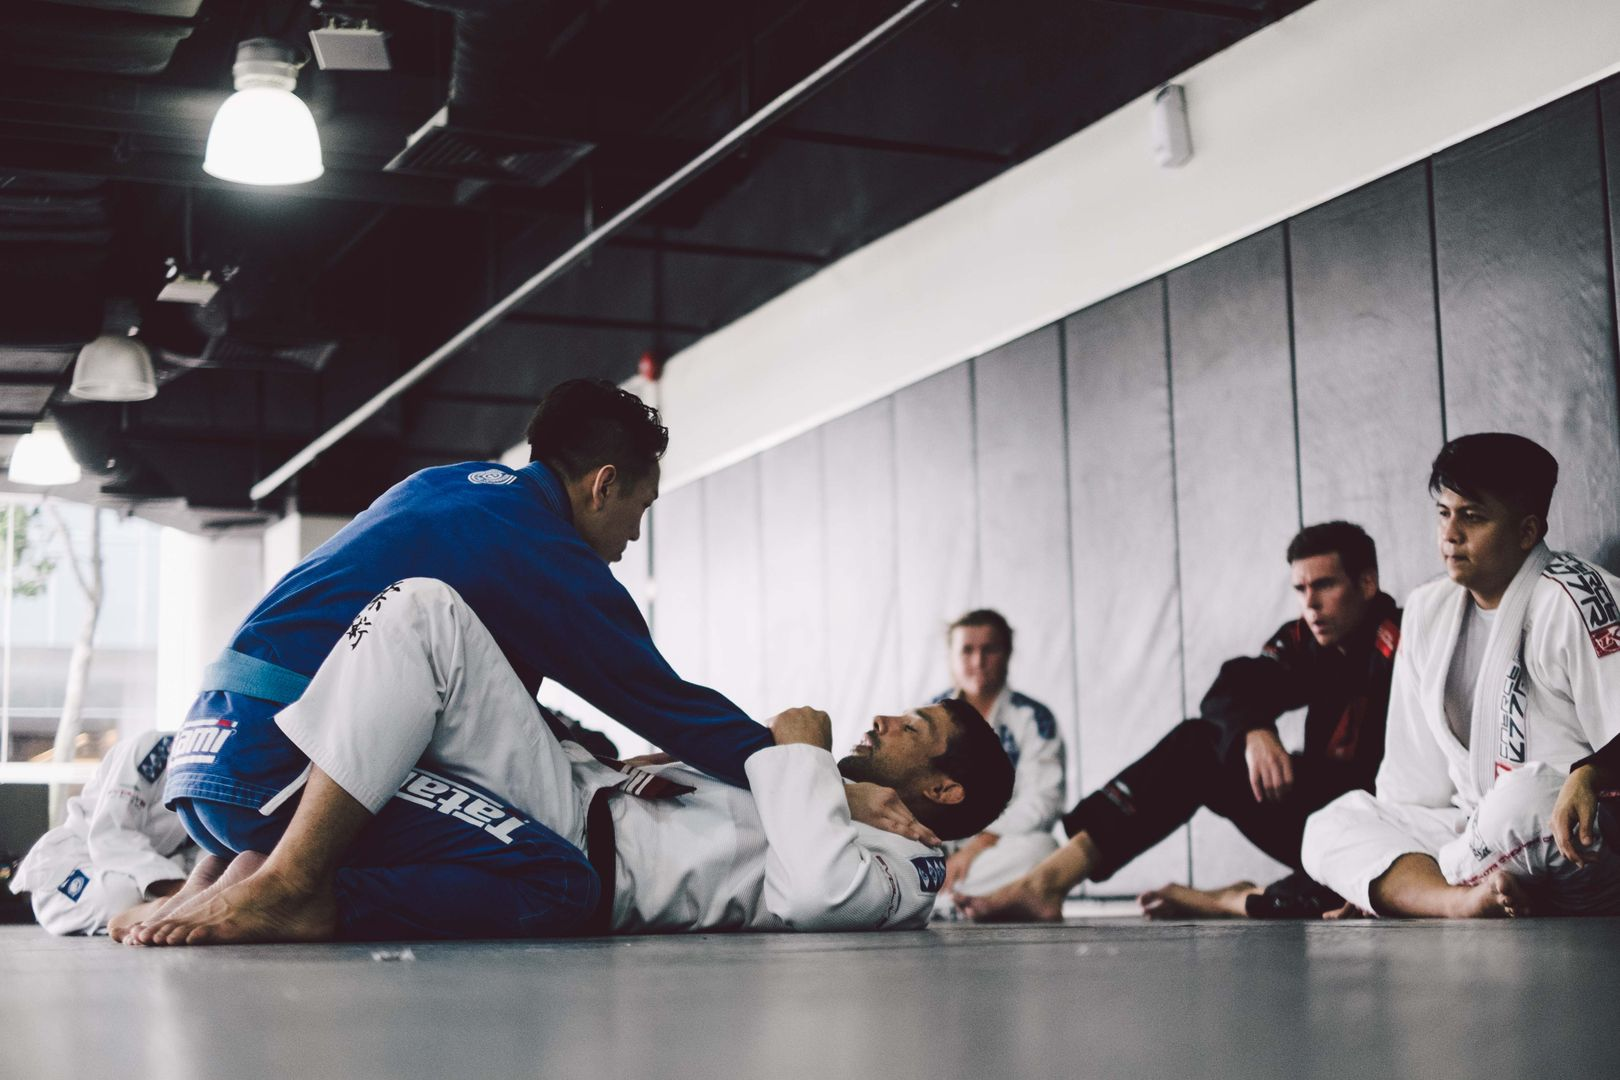 It takes a great amount of dedication and hard work to earn your BJJ black belt.